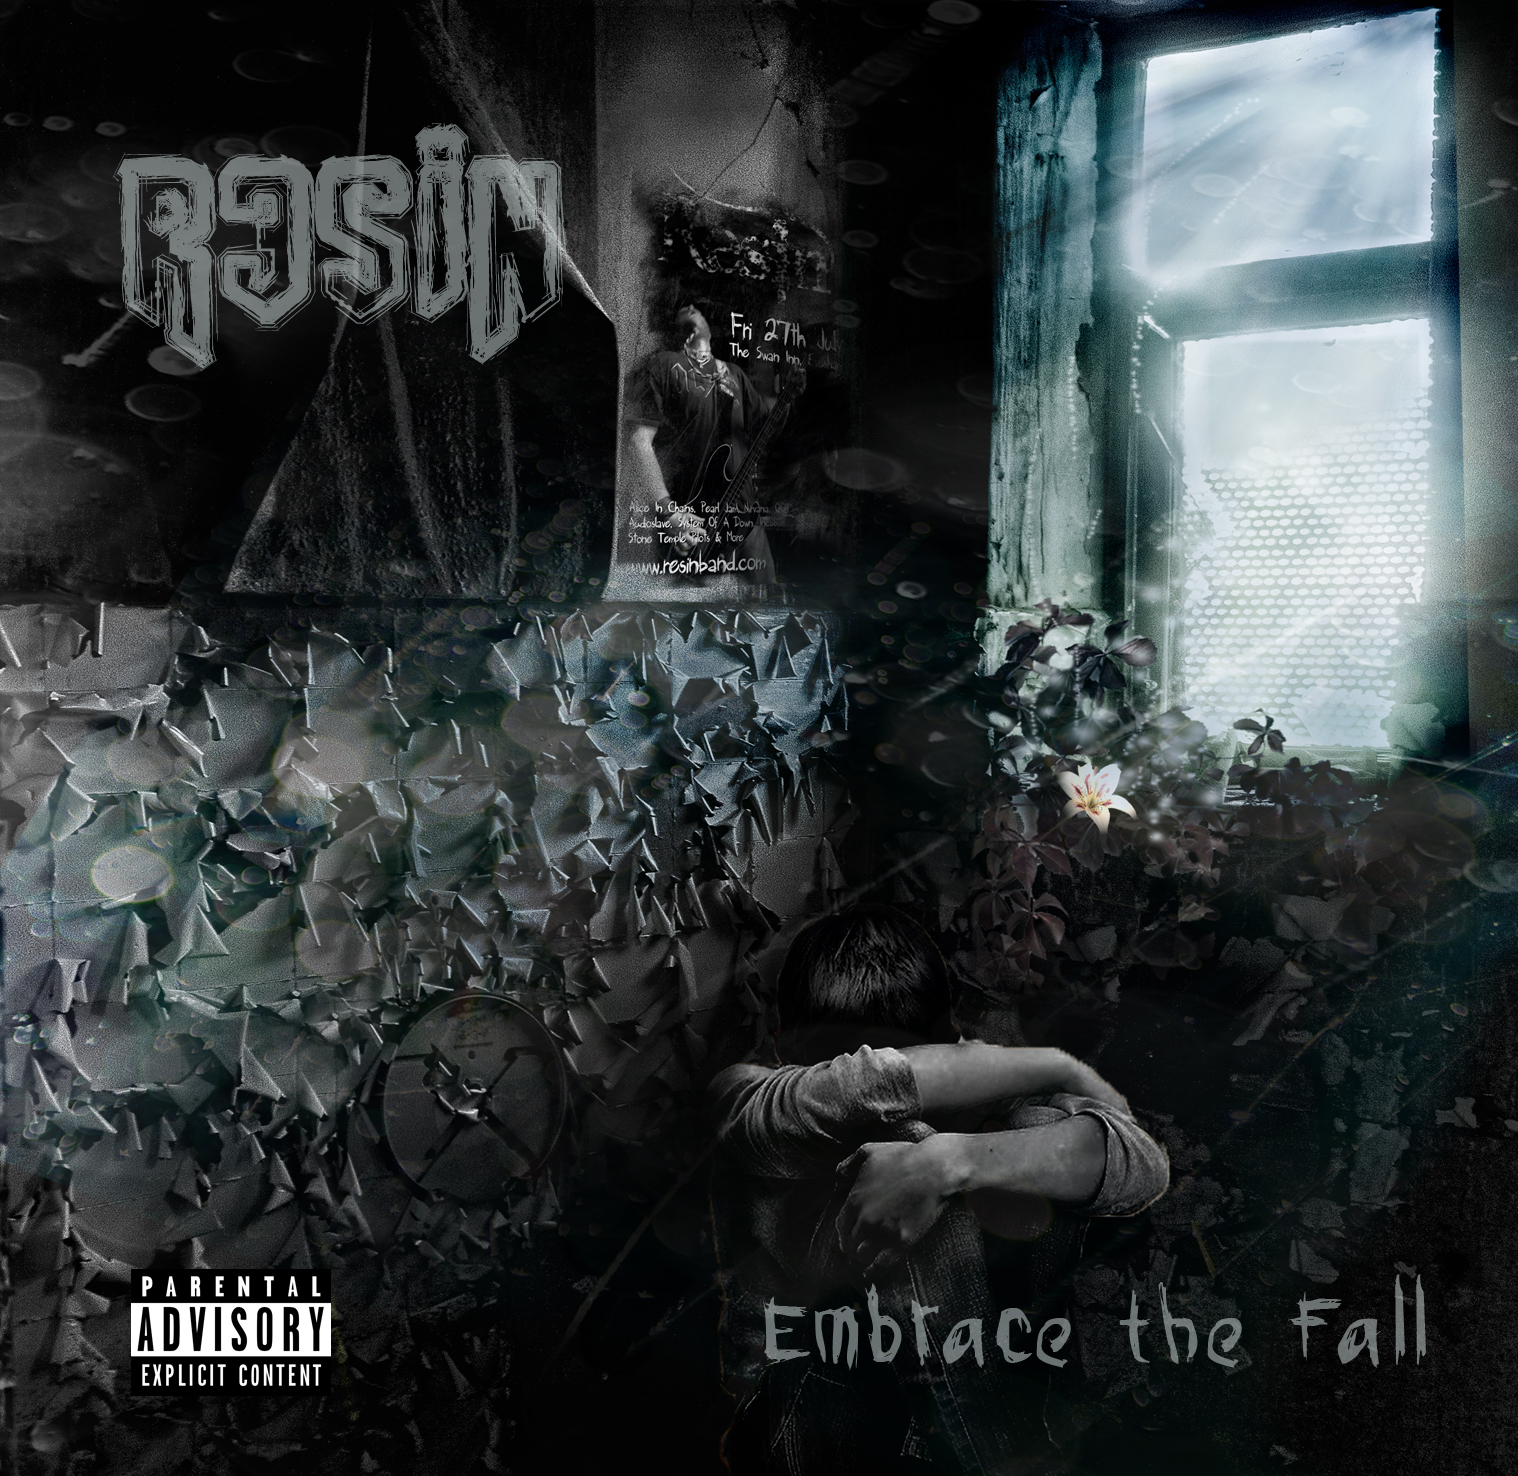 embrace the fall album cover